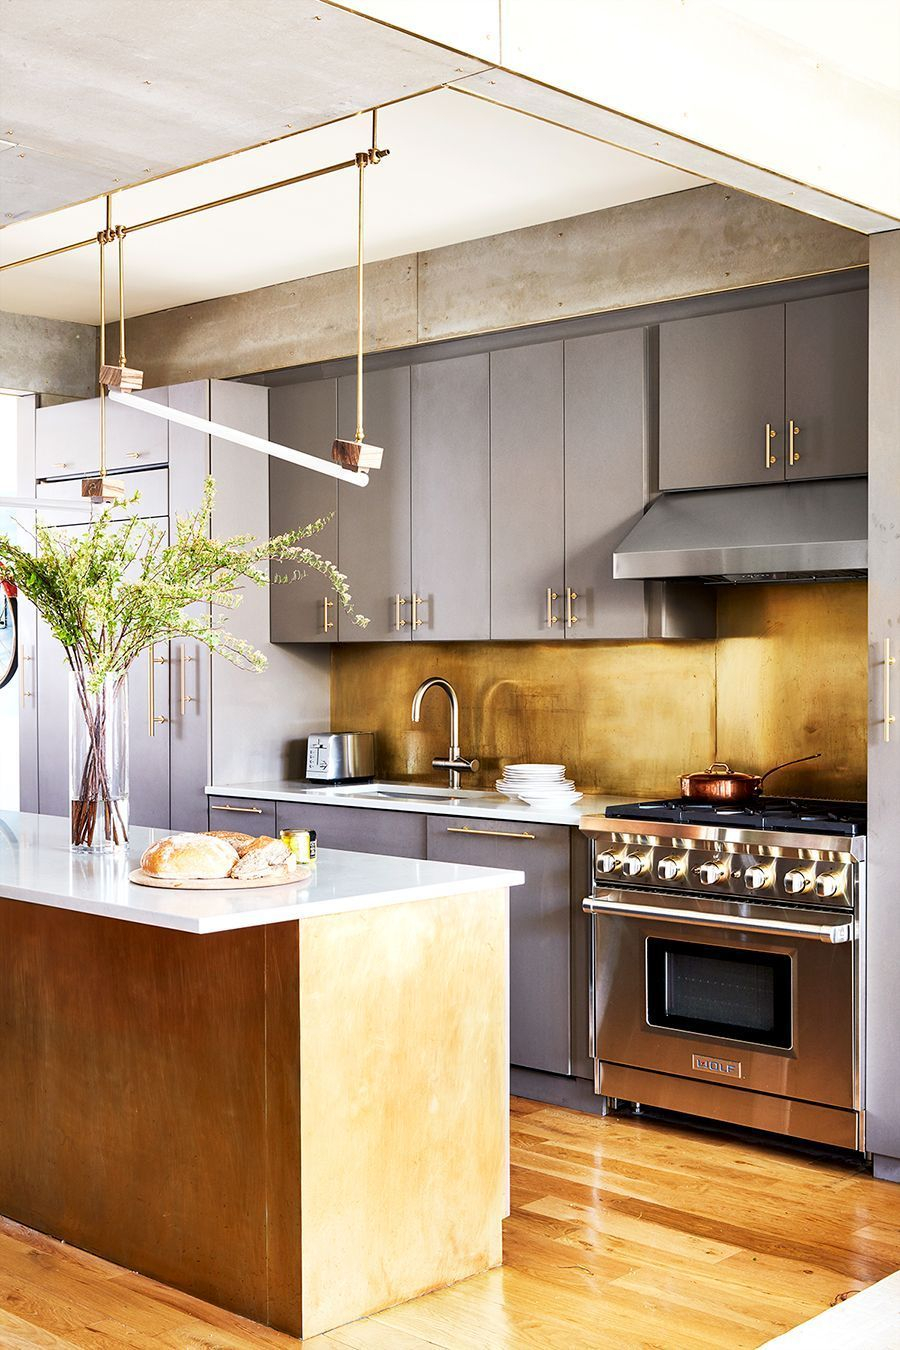 Relaxing Practical Kitchen Design Ideas For Every Solution32